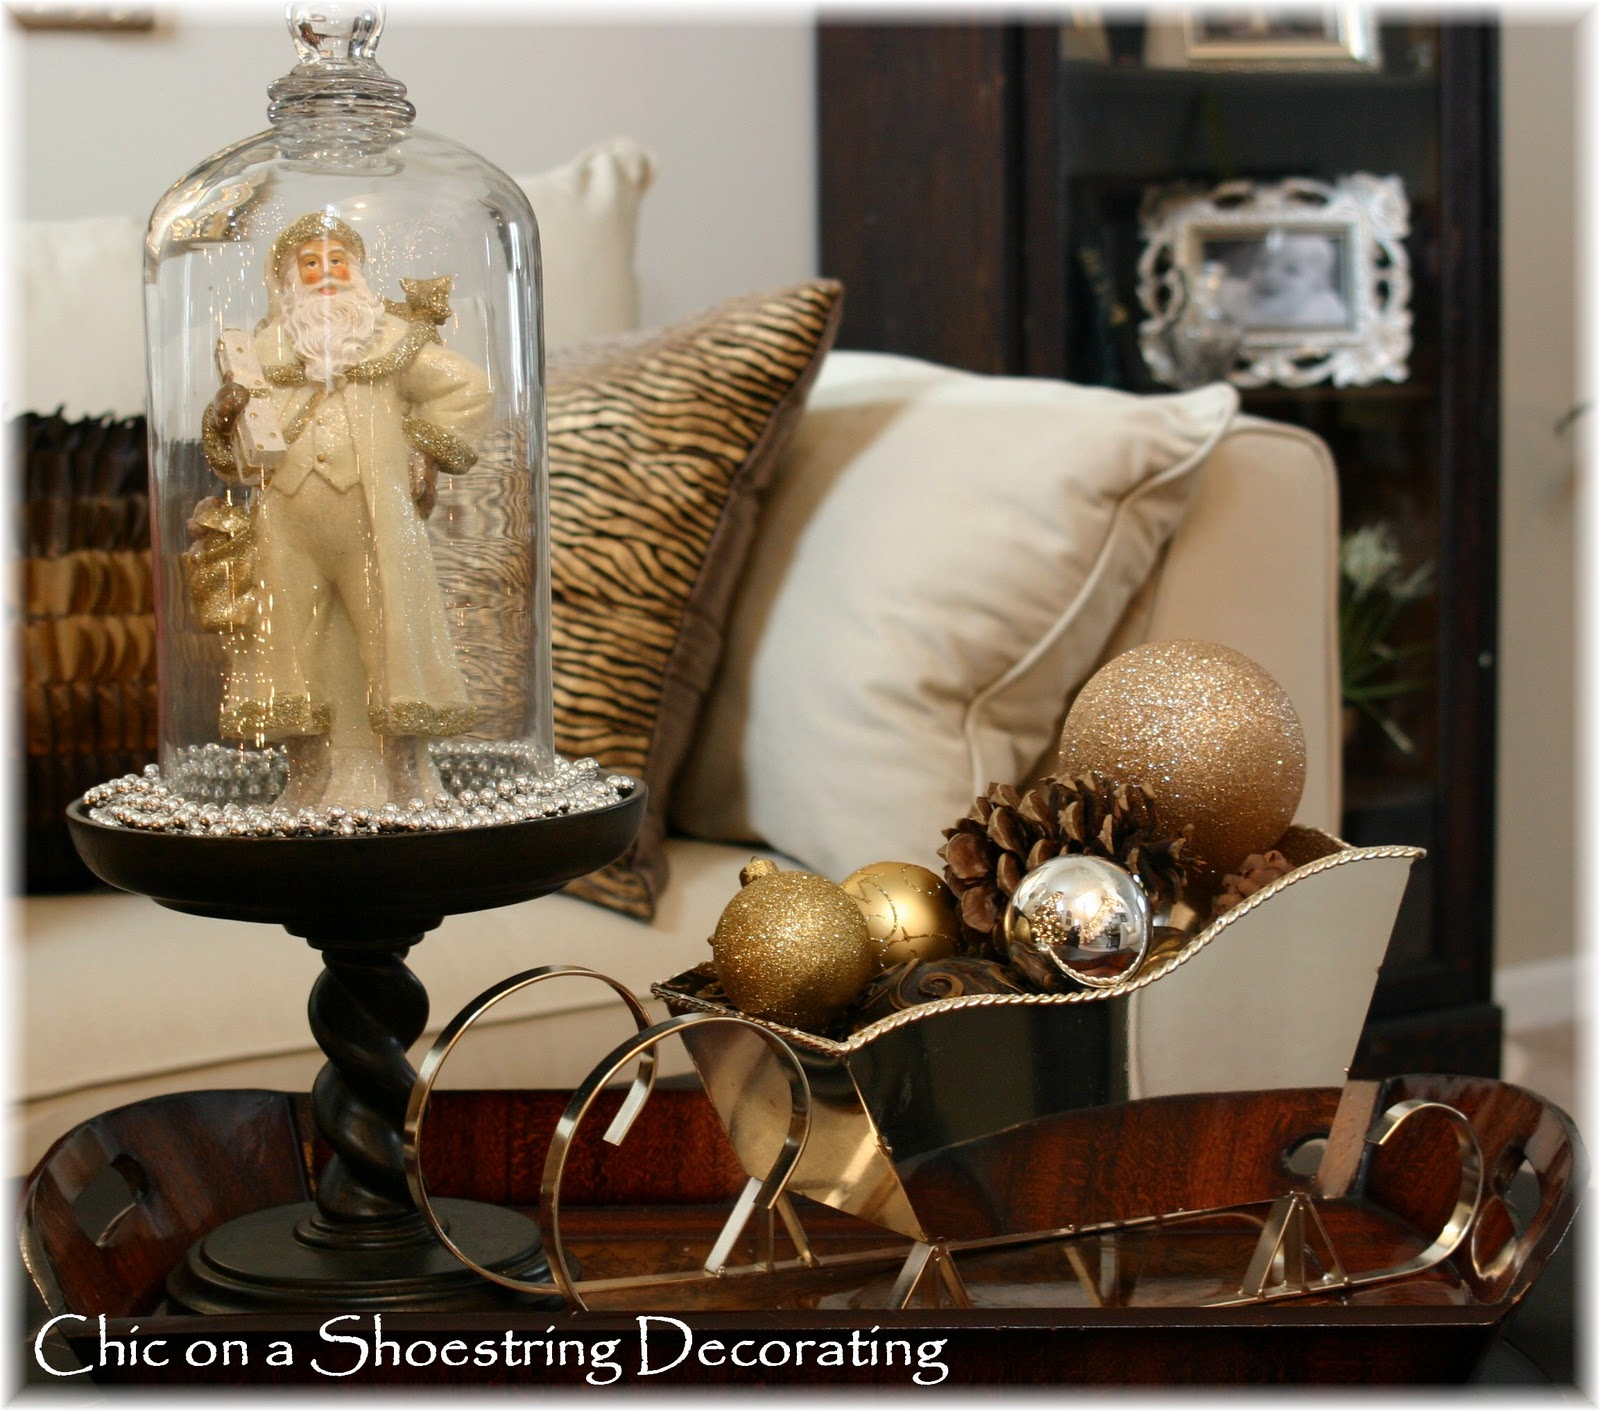 Chic On A Shoestring Decorating Christmas Home Tour 2011